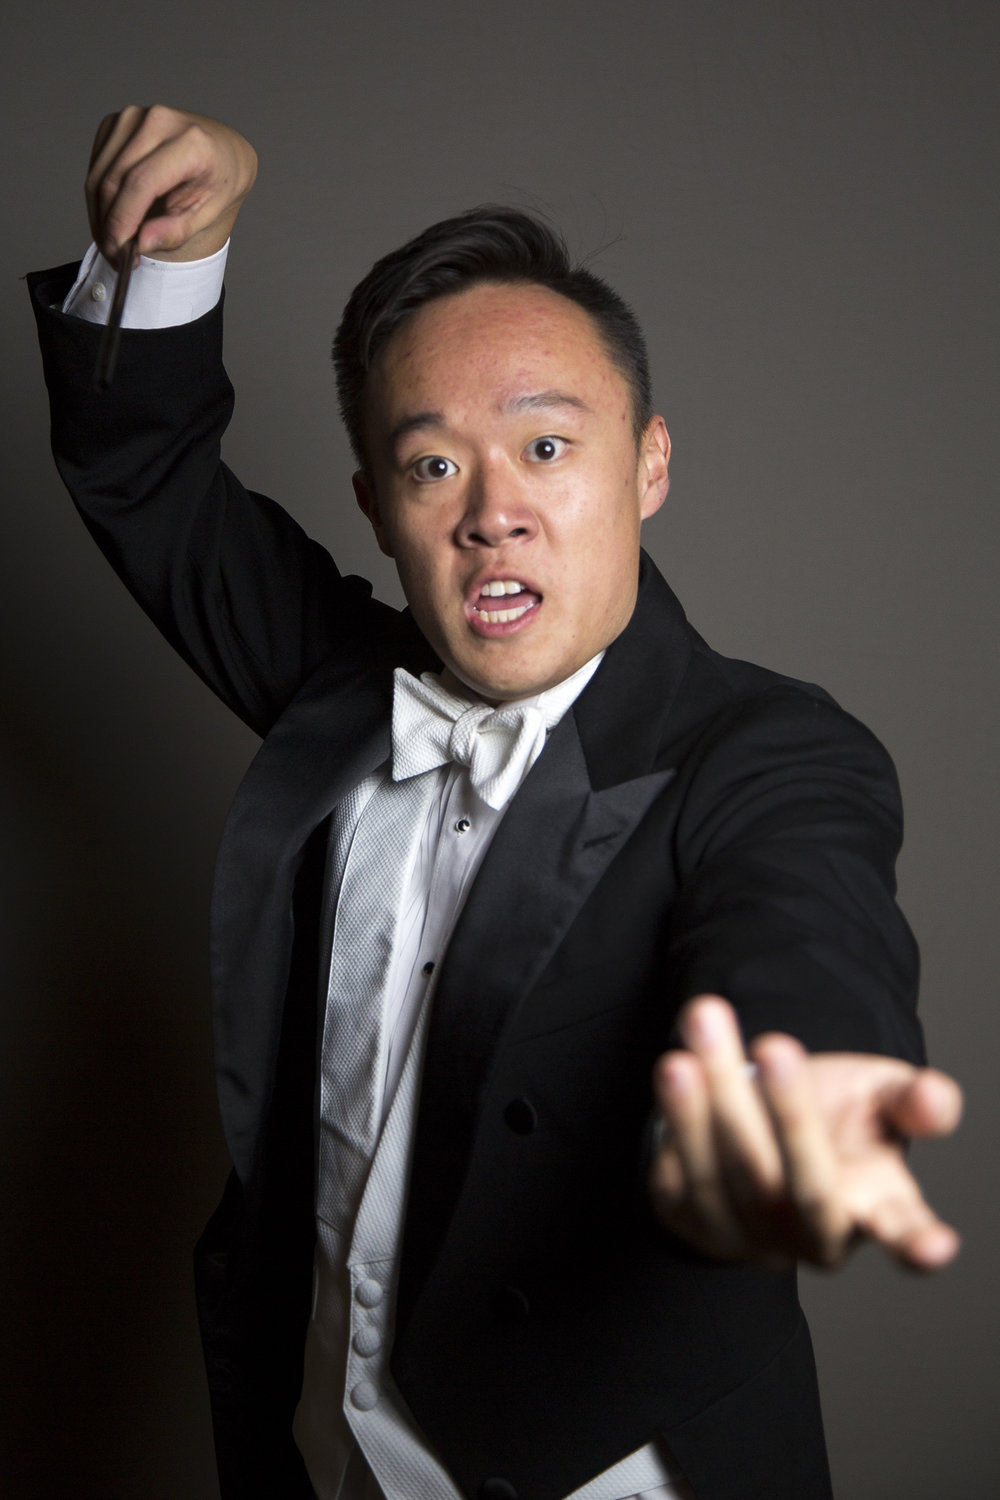 UNC-Chapel Hill senior Eric Lee conducts an invisible orchestra in a posed portrait on Halloween night in Chapel Hill Tuesday, Oct. 31st, 2017.